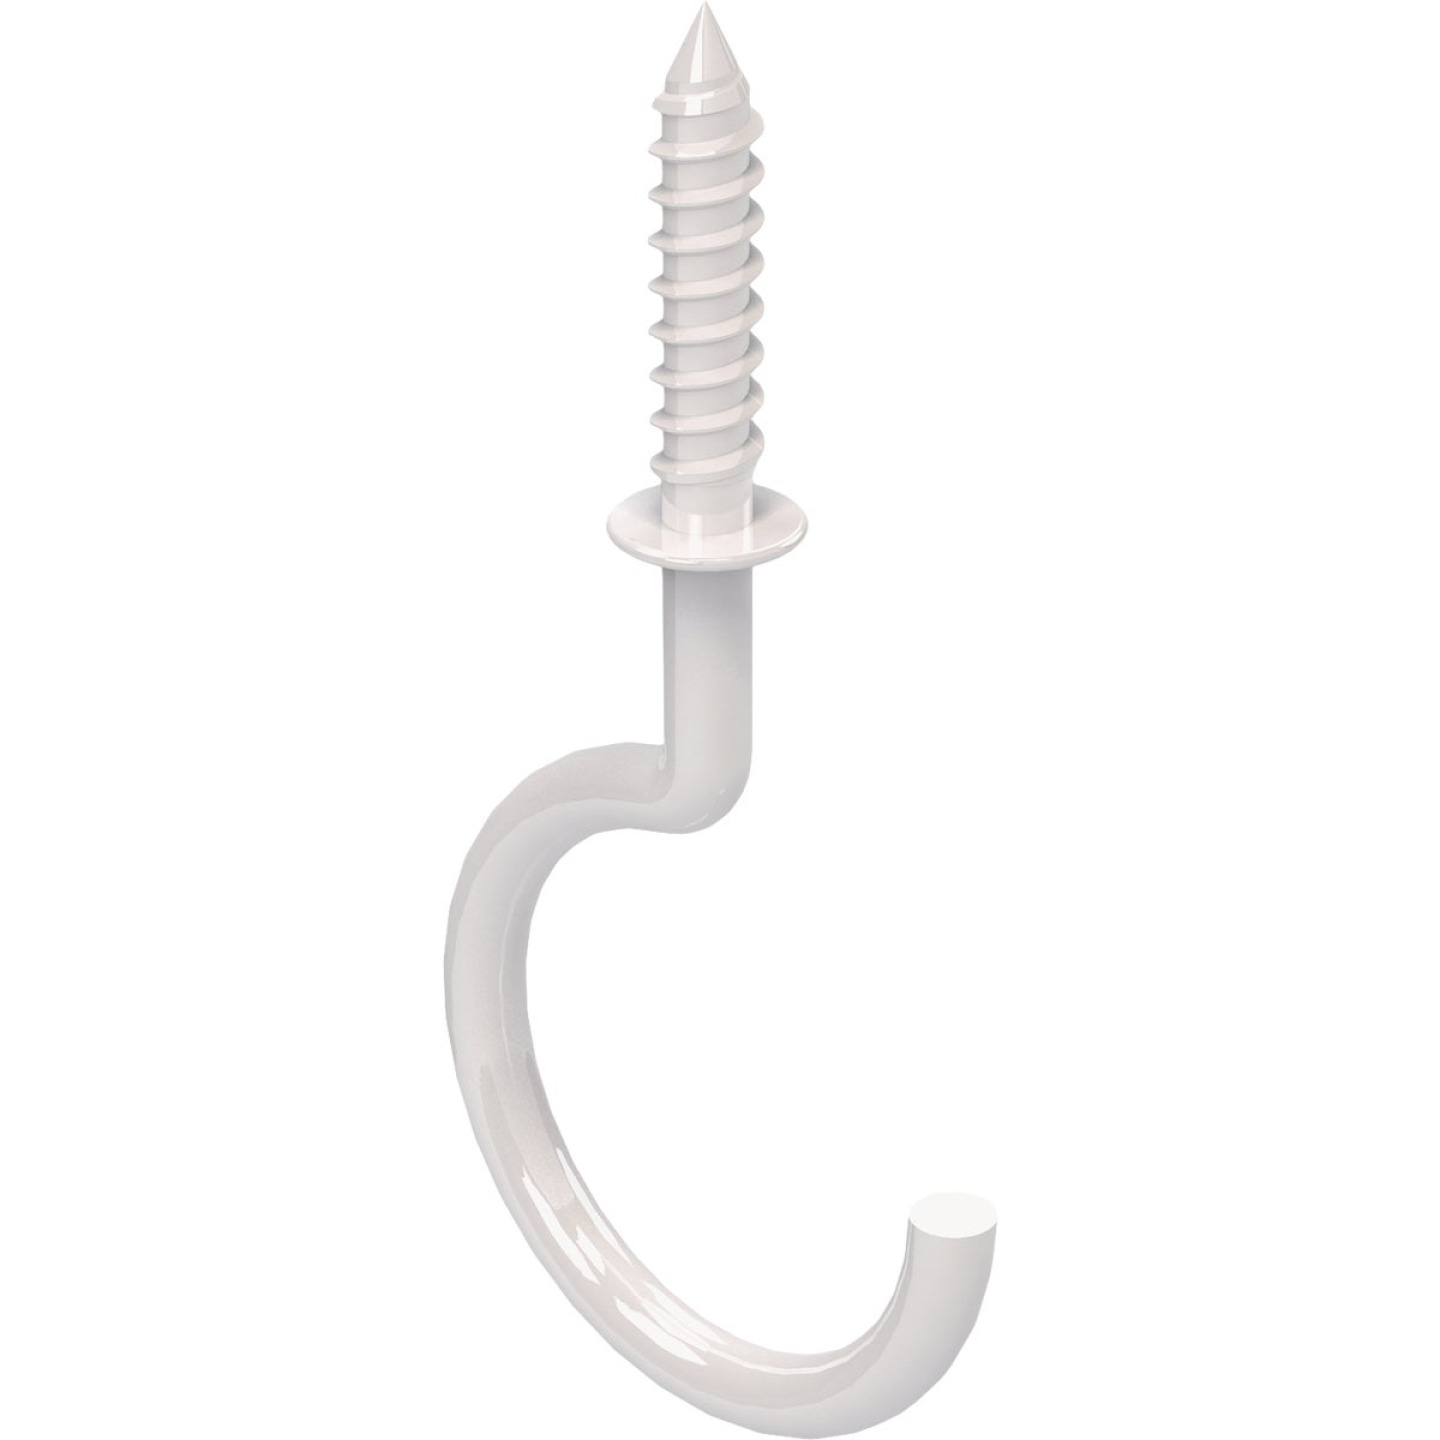 National White Vinyl-Coated Ceiling Hook (2 Pack) Image 1